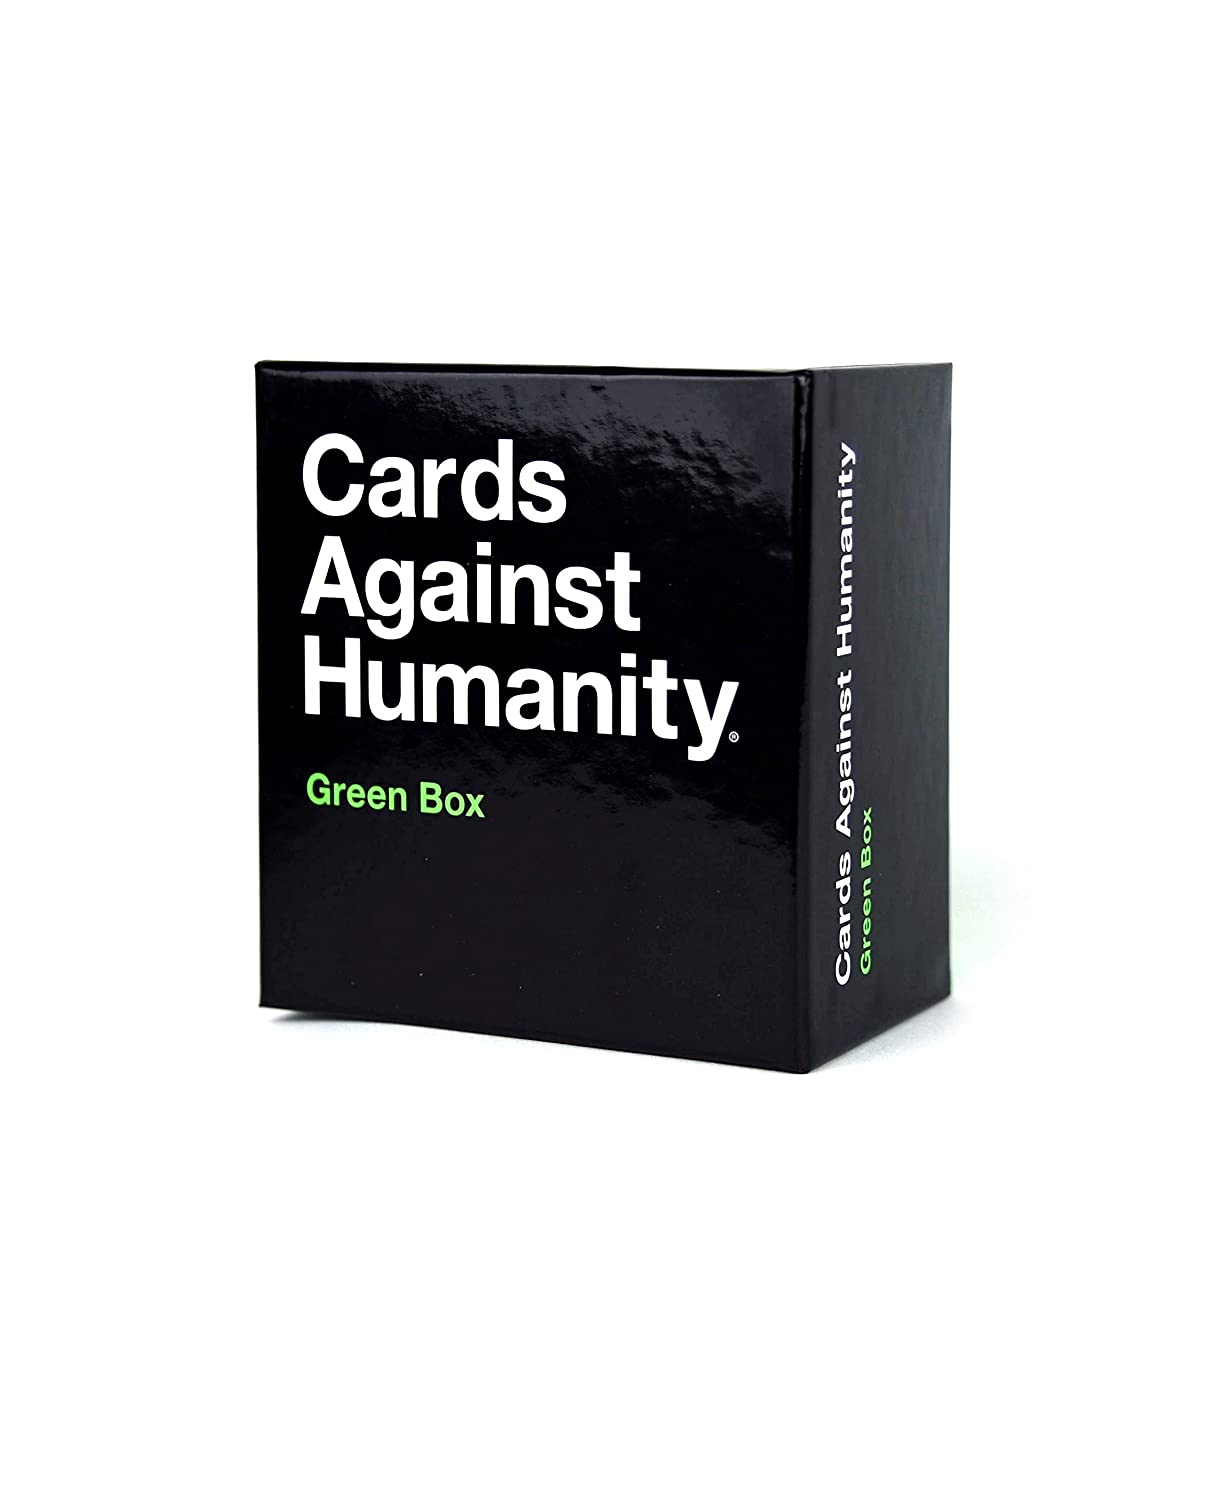 Amazon.com: Cards Against Humanity: Green Box: Toys & Games